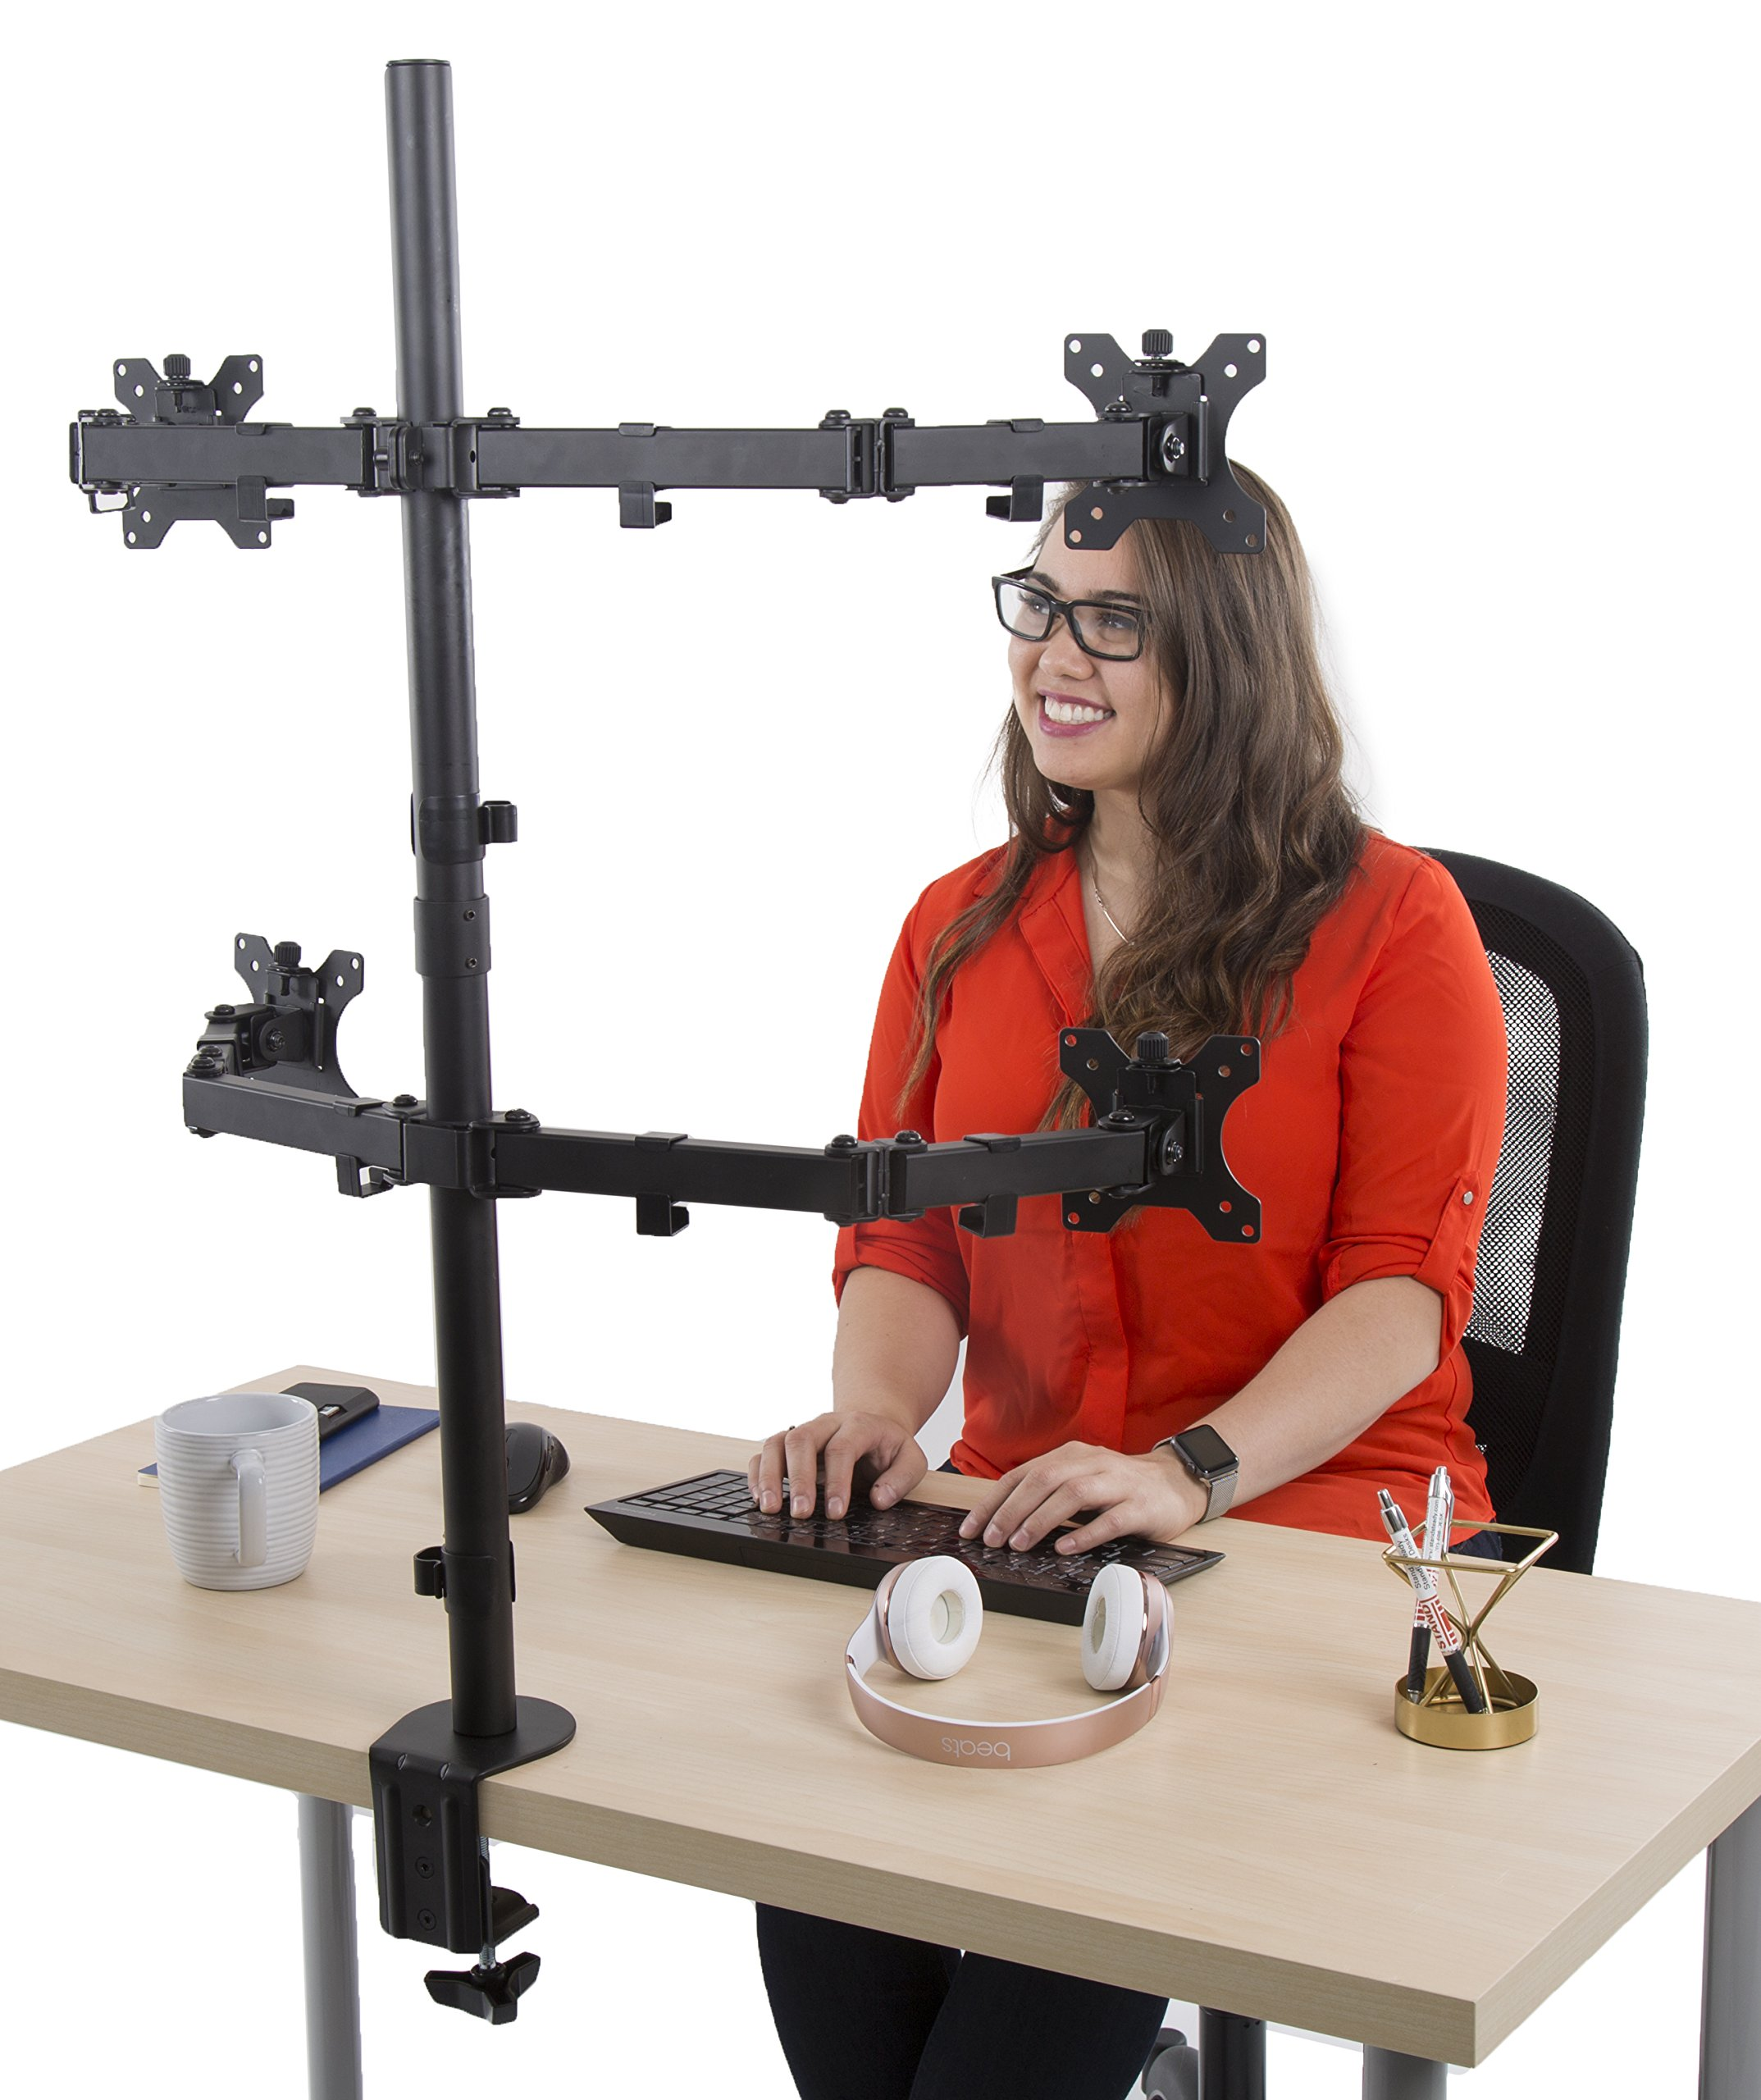 Stand Steady Monitor Arm | Height Adjustable with Full Articulation | VESA Mount Fits Most LCD / LED Monitors 13 - 32 Inches | Includes Clamp and Grommet (4 Monitors) by Stand Steady